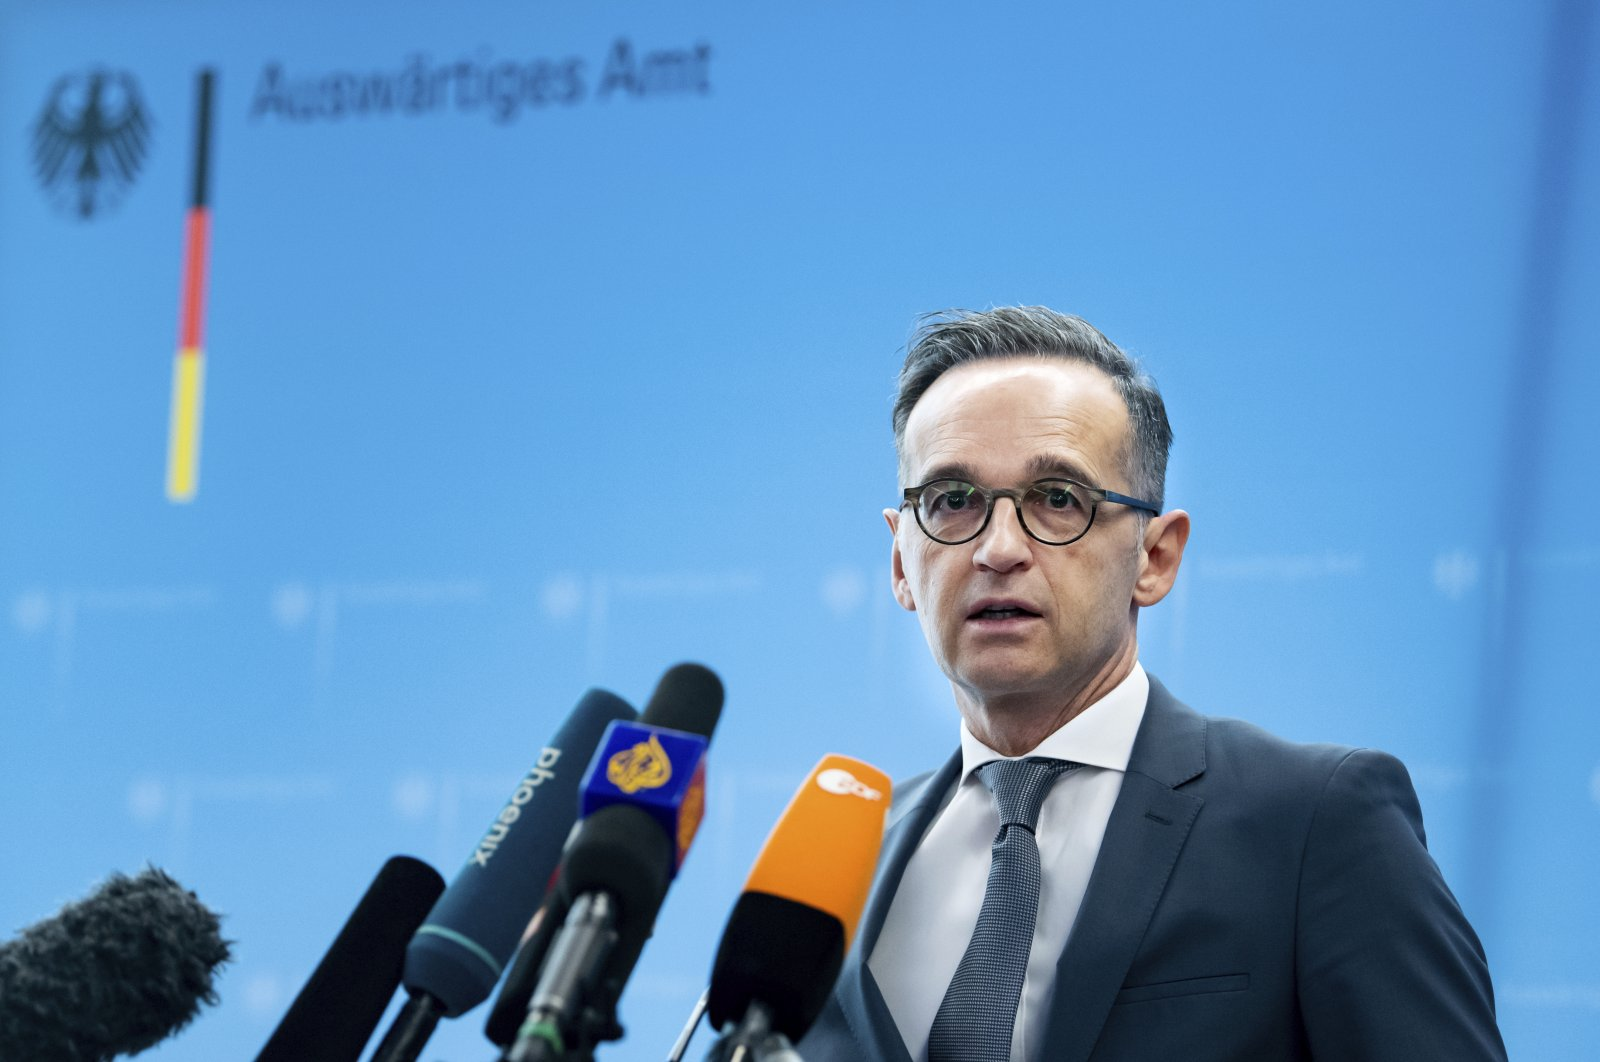 German Foreign Minister Heiko Maas briefs the media during a news conference on current developments in the worldwide spread of the coronavirus at the foreign ministry in Berlin, Germany, March 17, 2020. (AP Photo)